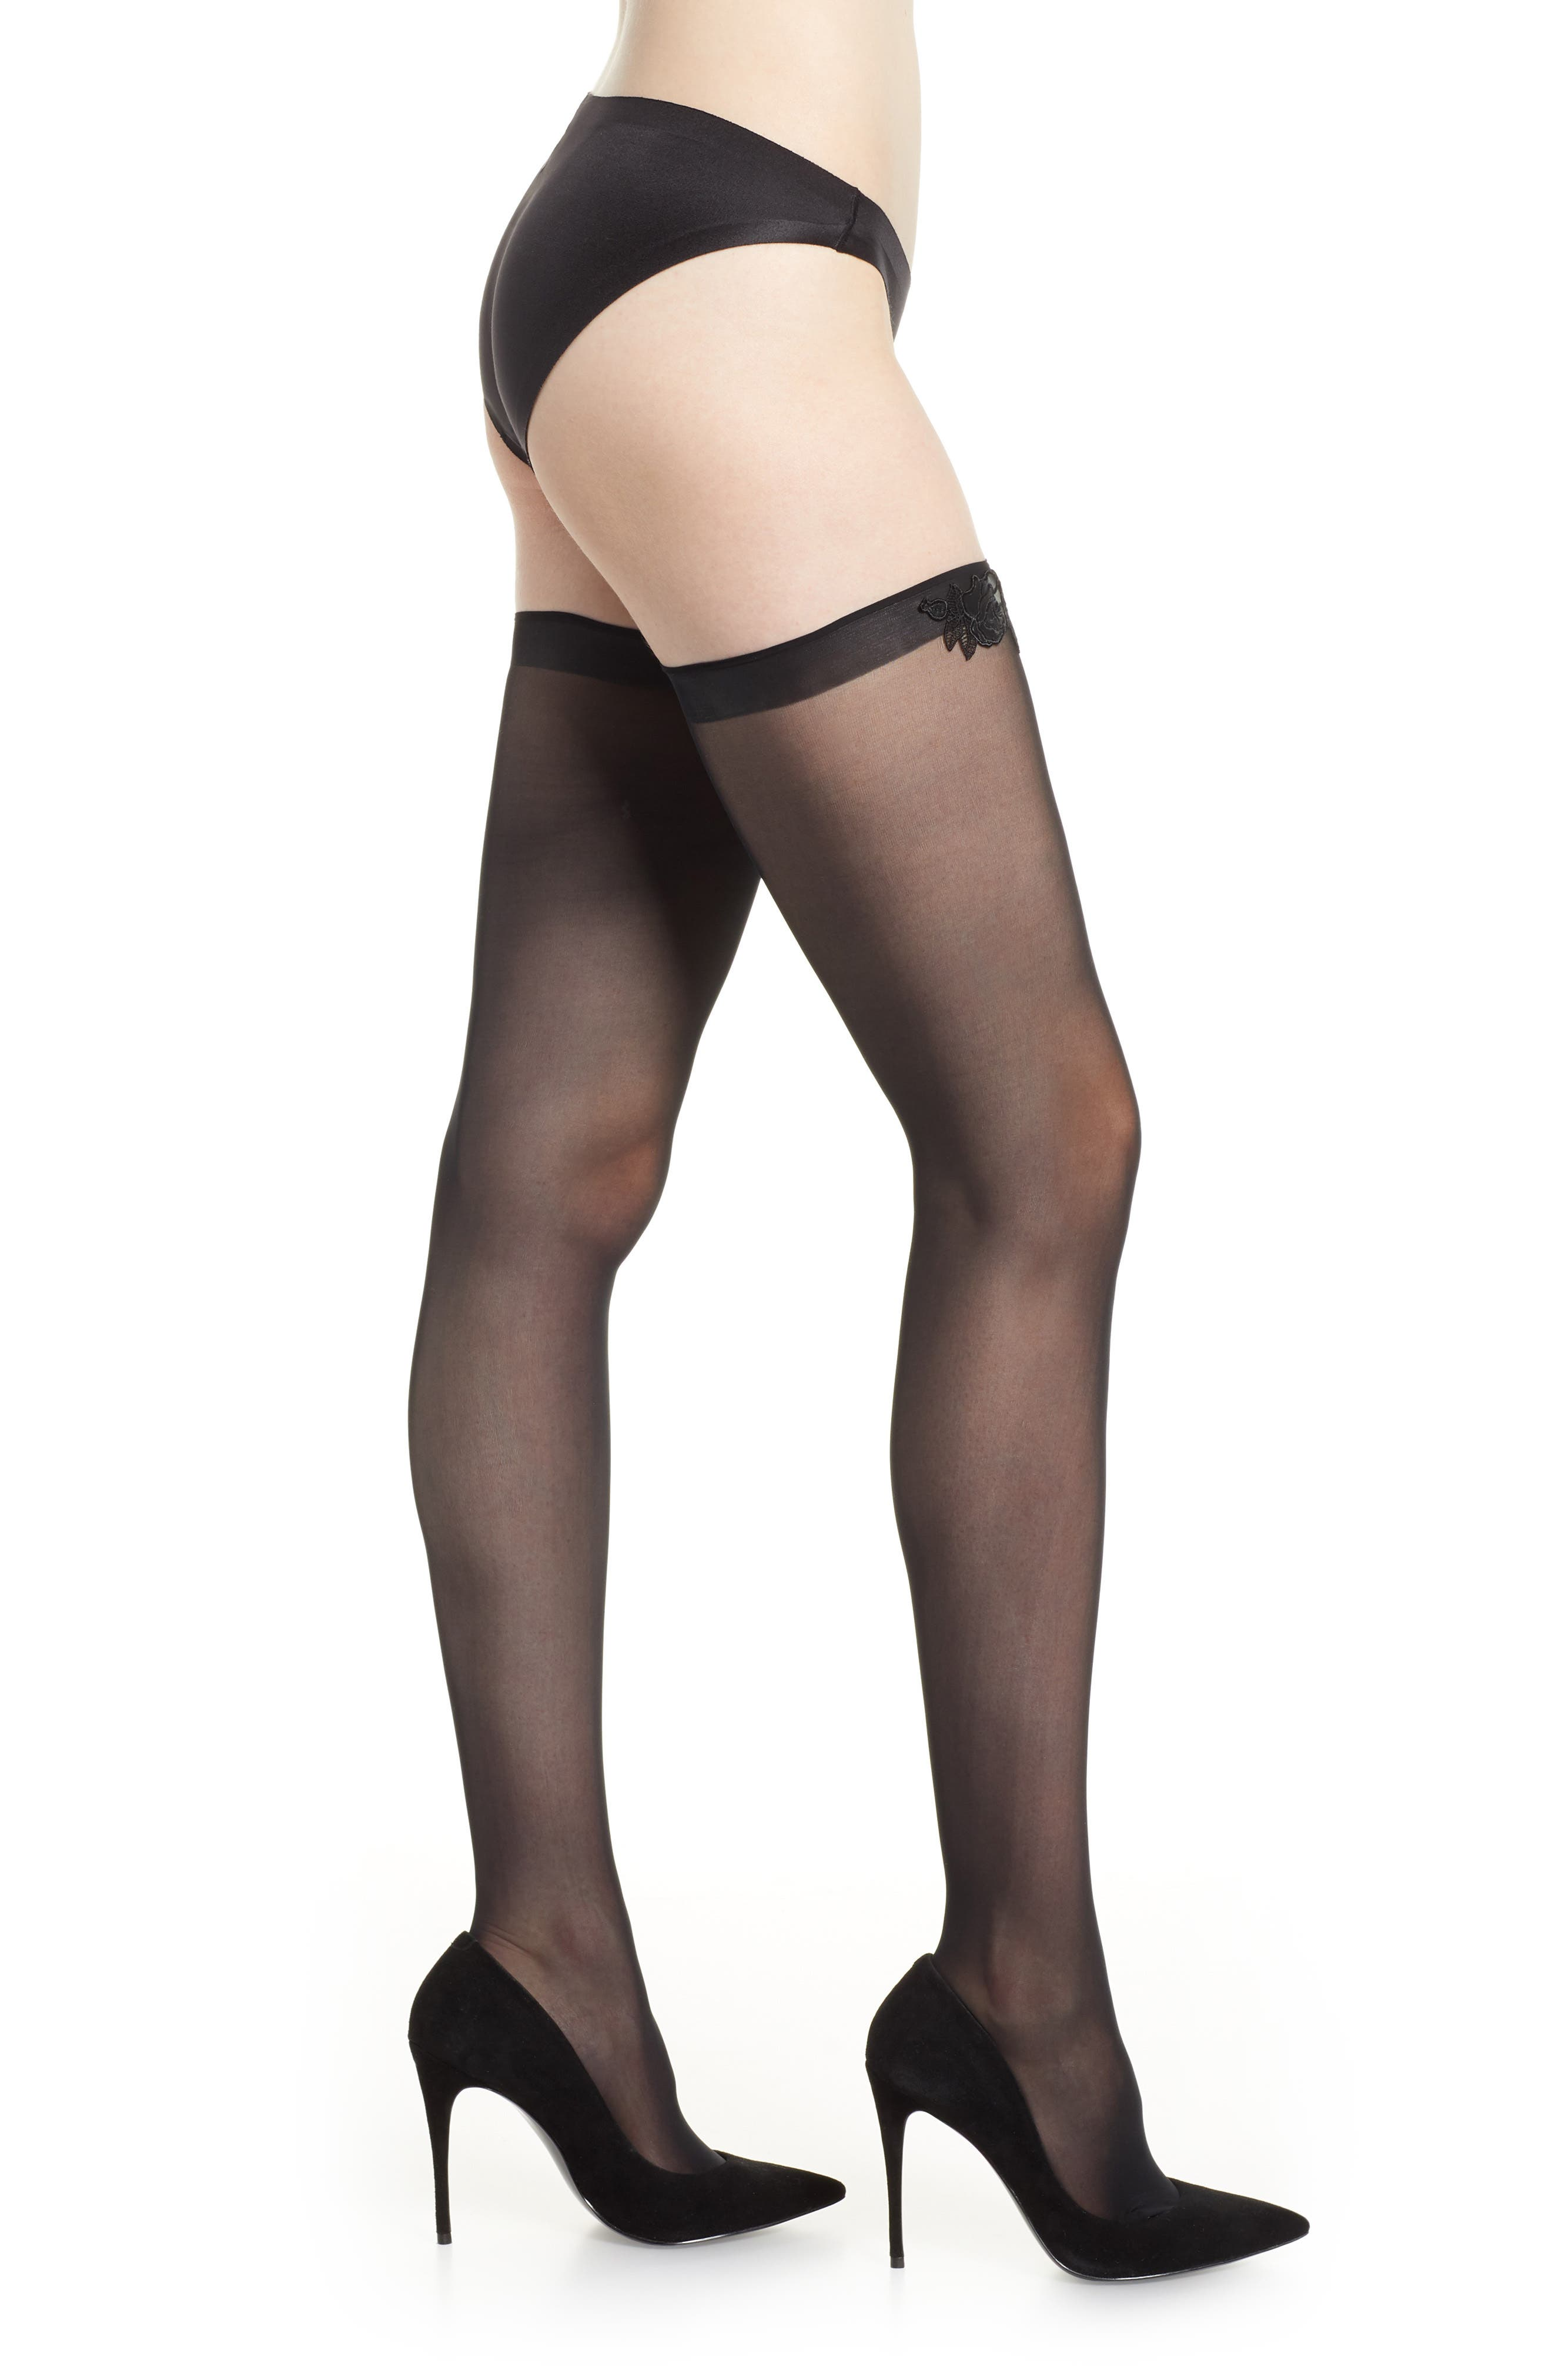 Valentina Stay-Up Stockings,                         Main,                         color, BLACK